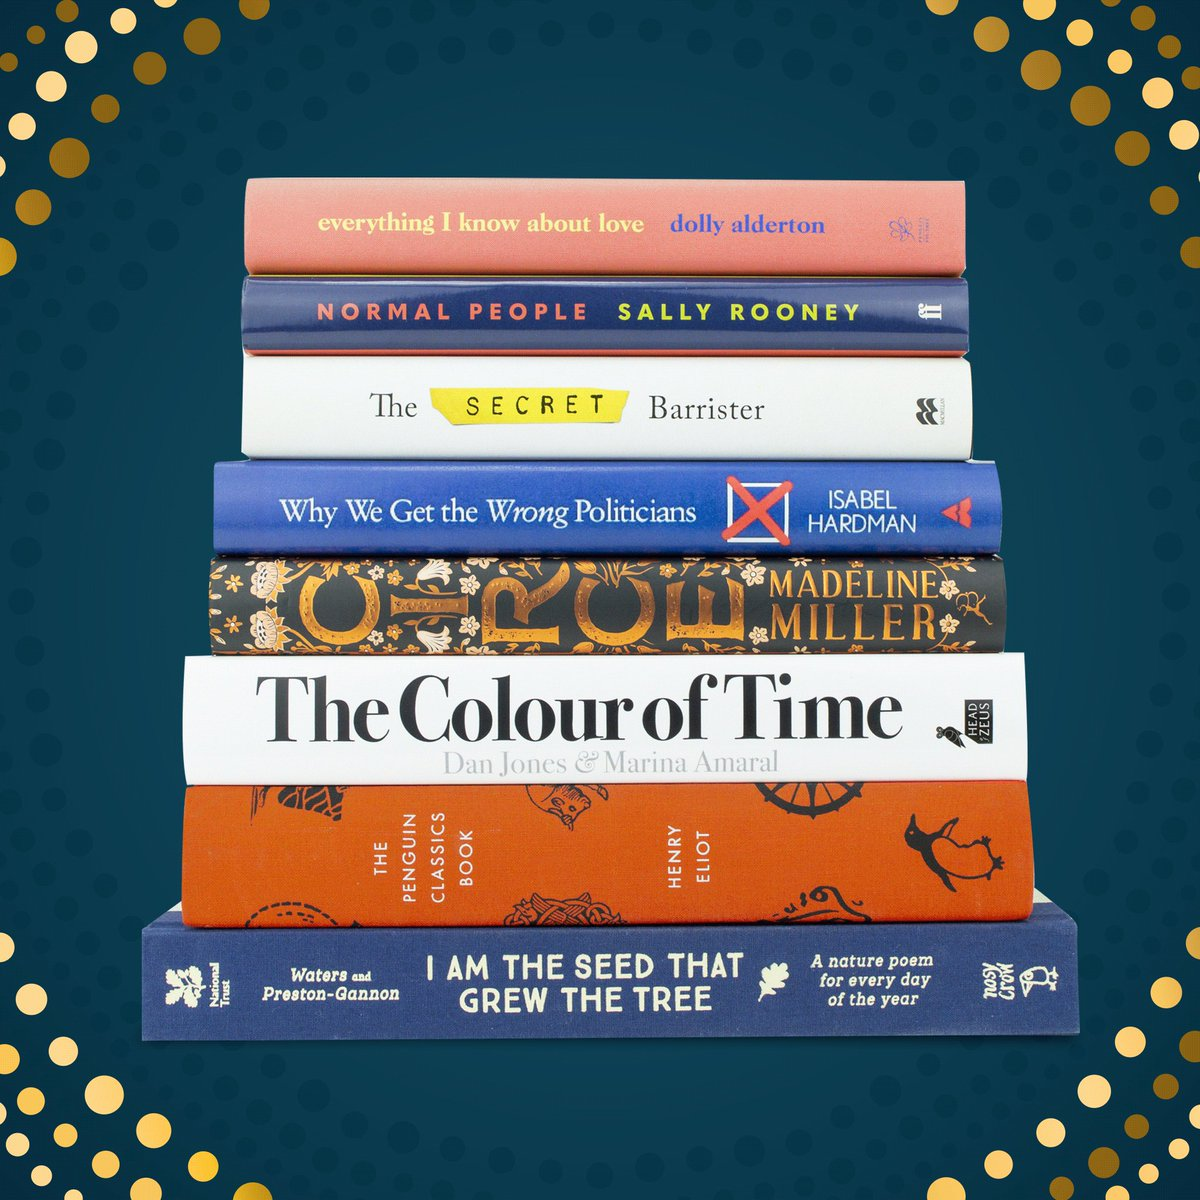 Championed by our booksellers. Loved by you, the readers. We are incredibly proud to announce the eight-strong shortlist for the Waterstones Book of the Year 2018. Discover more here: https://www.waterstones.com/category/cultural-highlights/book-awards/the-waterstones-book-of-the-year?utm_source=WS_BOTYShortlistMainPost&utm_medium=twitter&utm_campaign=november2018twitter… #BookOfTheYear